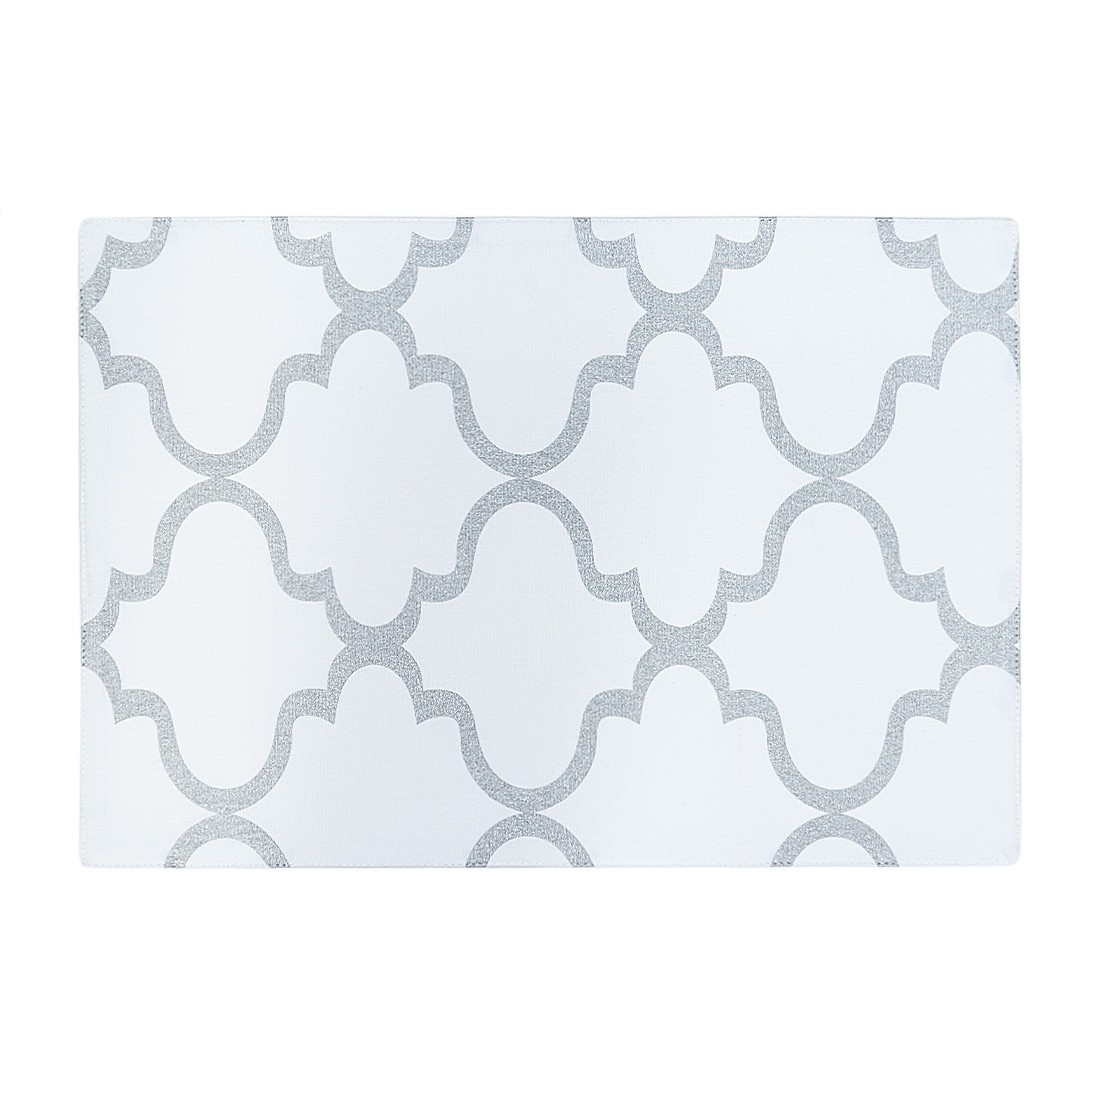 Linen Tablecloth Moroccan Print Placemat Set (Set of 4), White and Silver by Linen Tablecloth